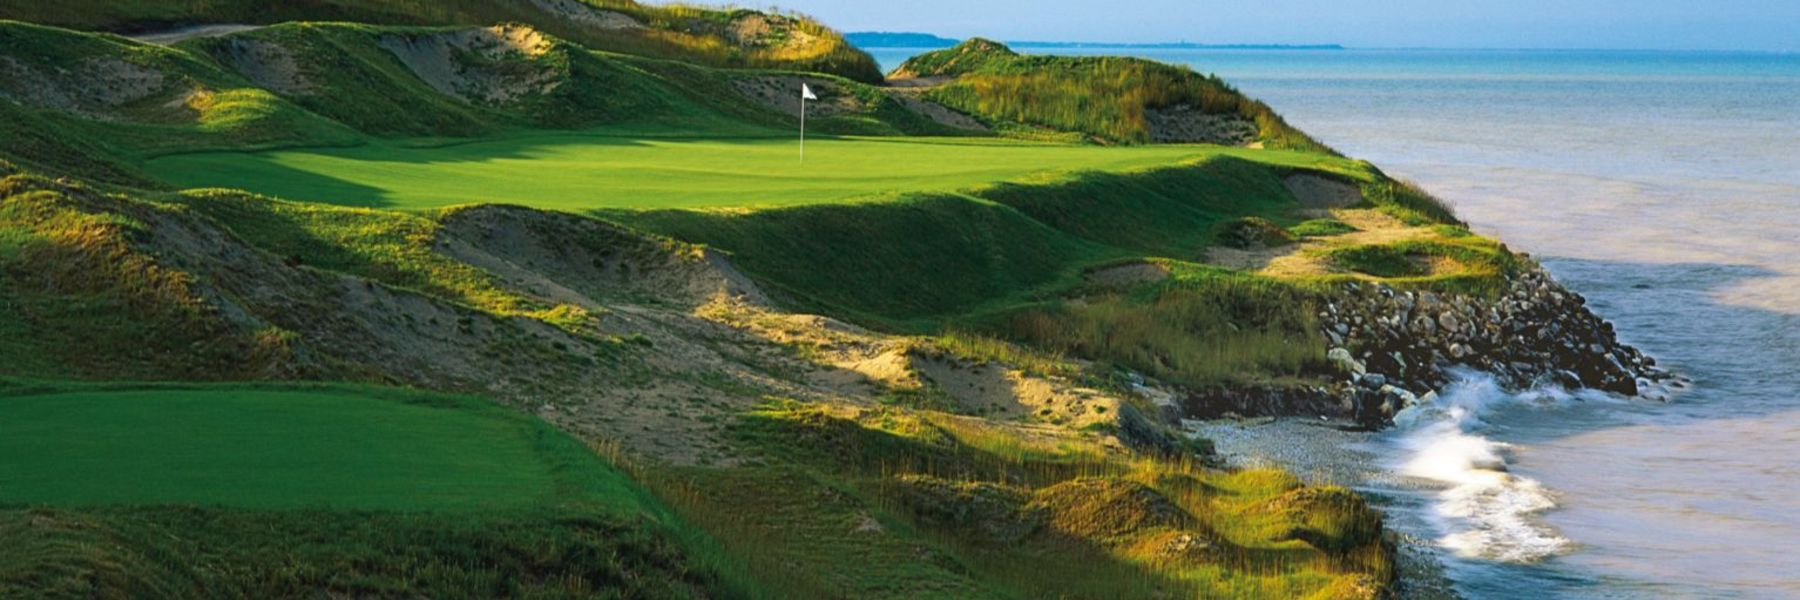 Golf Vacation Package - Whistling Straits Stay and Play - 3 Nights & 3 Rounds for $439 per person, per day!